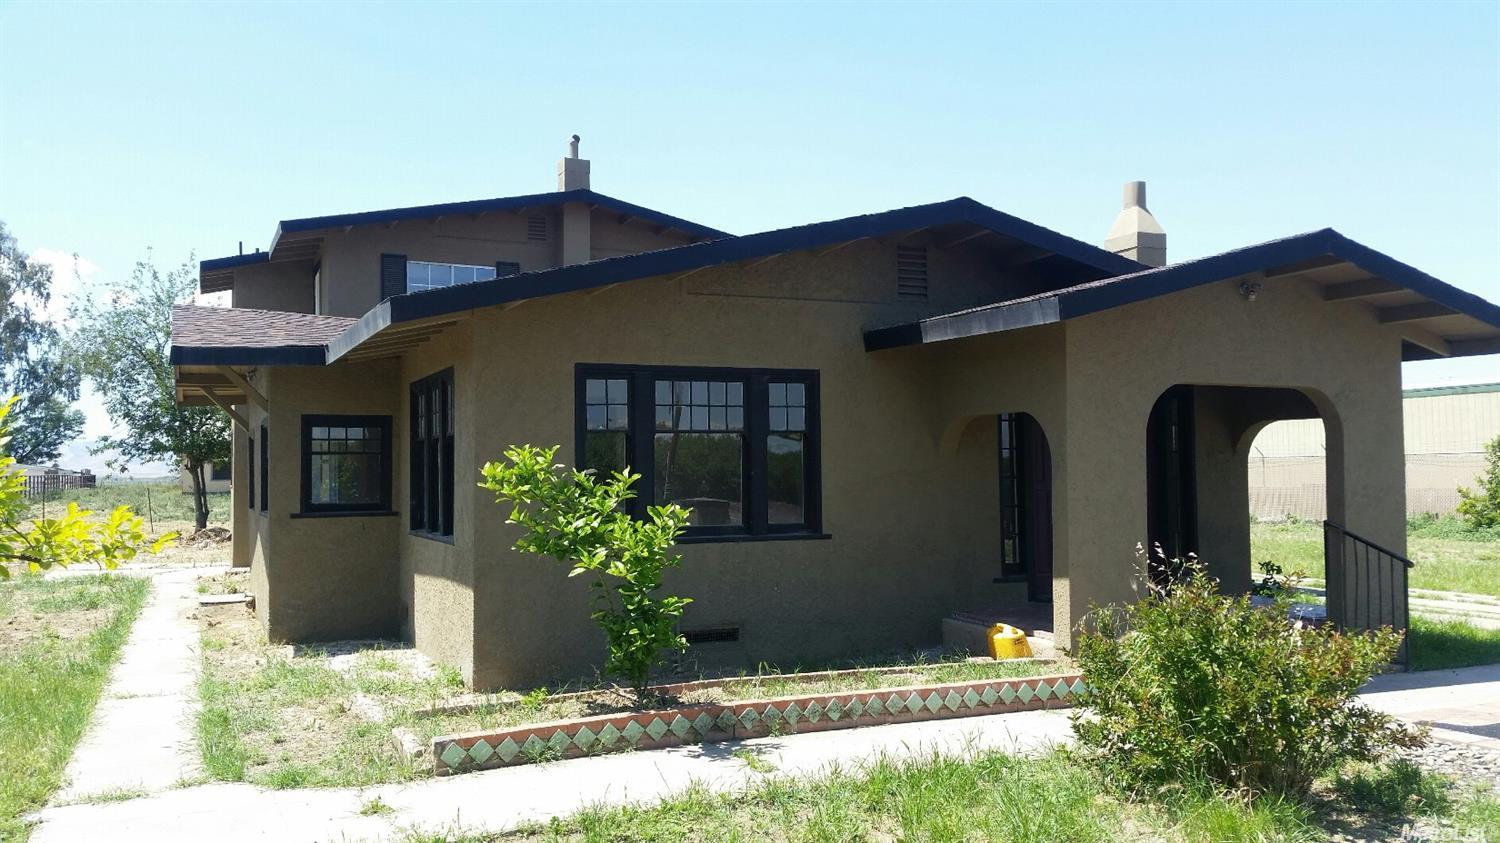 27143 State Highway 33, Newman, CA 95360